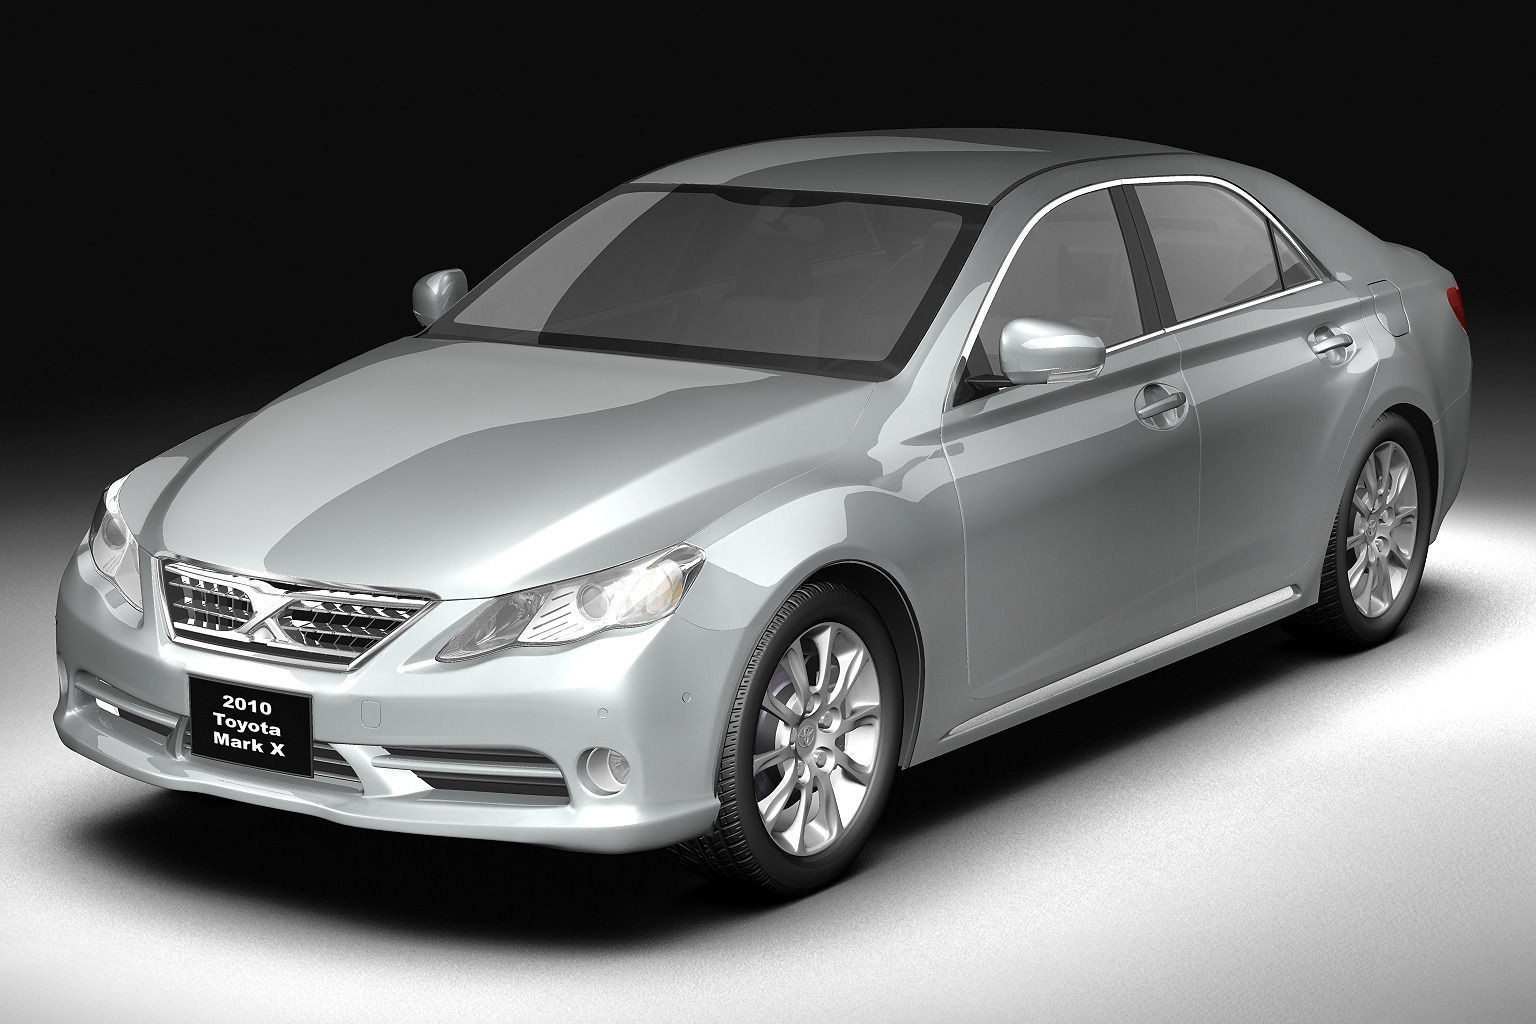 Toyota Mark X 2010